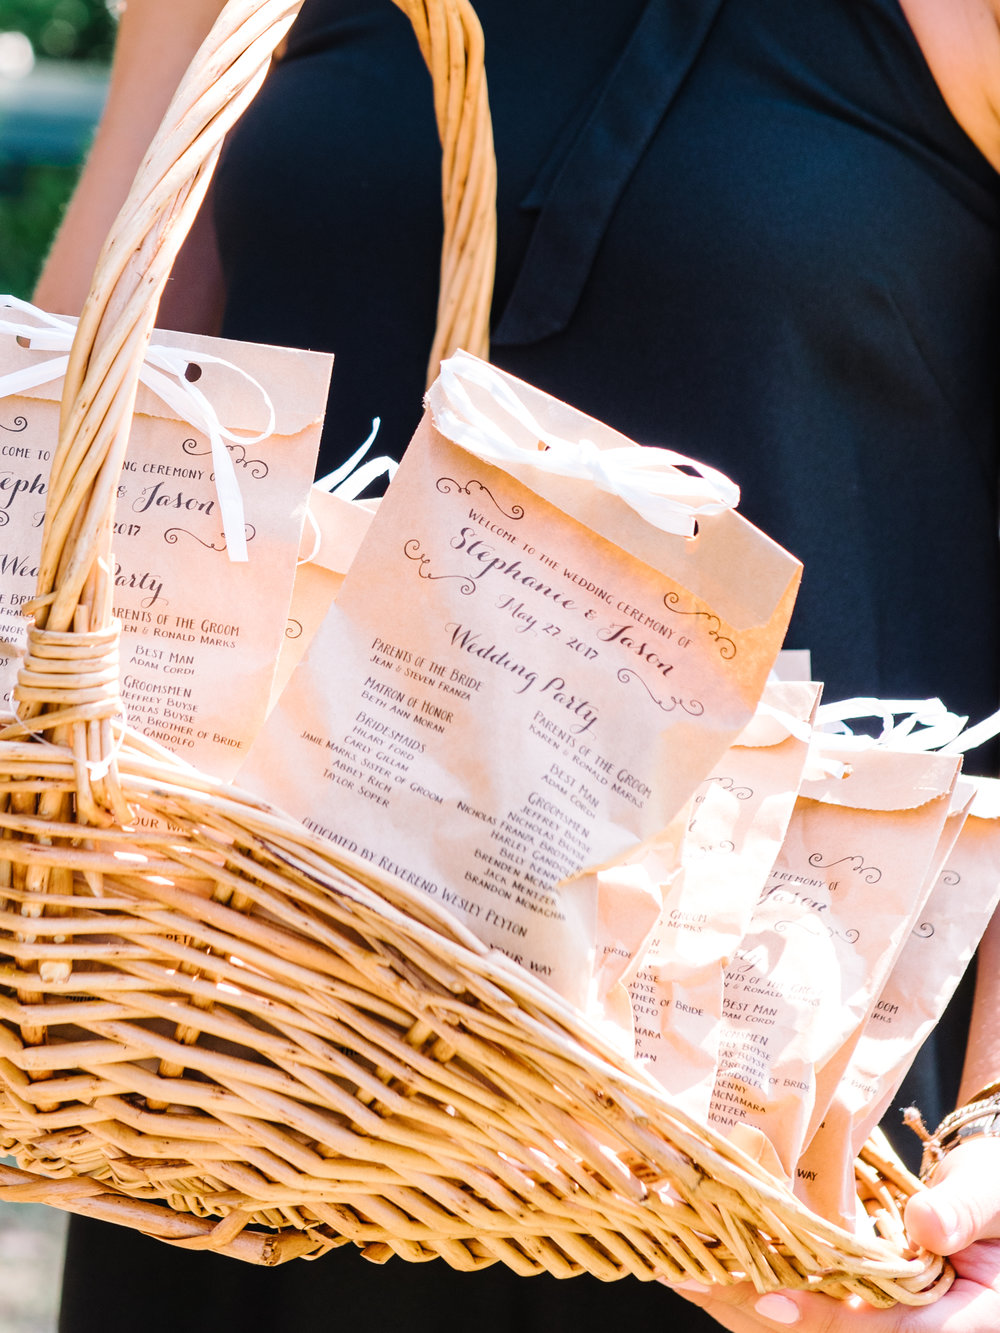 Custom wedding programs at Wachesaw Plantation ceremony photographed by Pasha Belman Photography